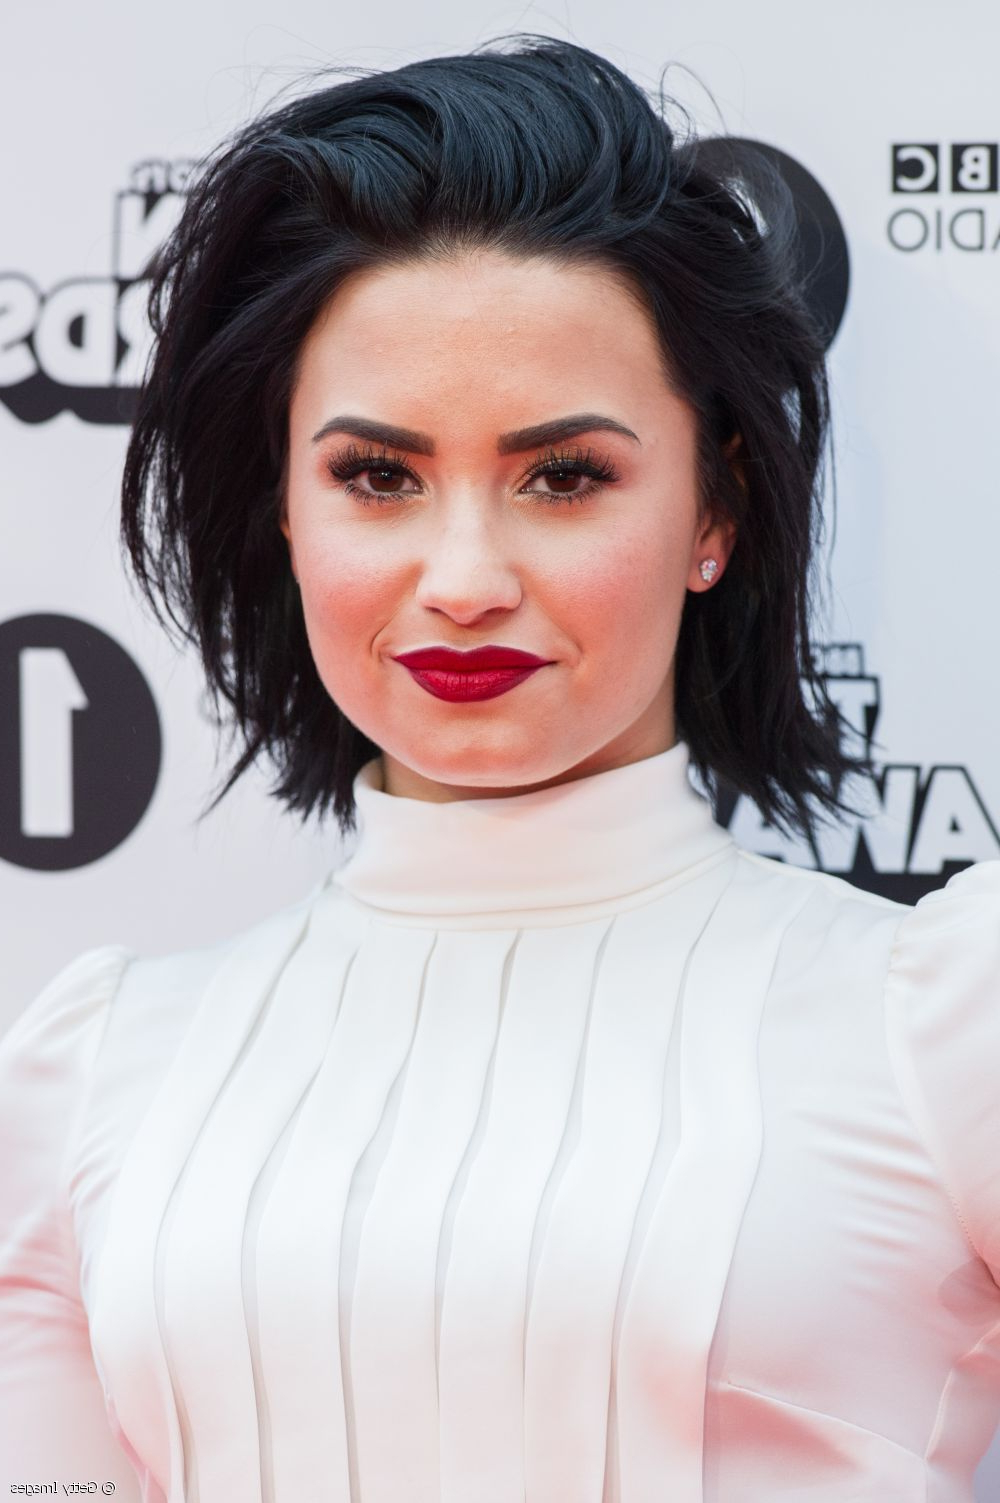 Demi Lovato Goes High Glam: Get Her Red Lipstick + Xxl Lashes Makeup! intended for Demi Lovato Short Haircuts